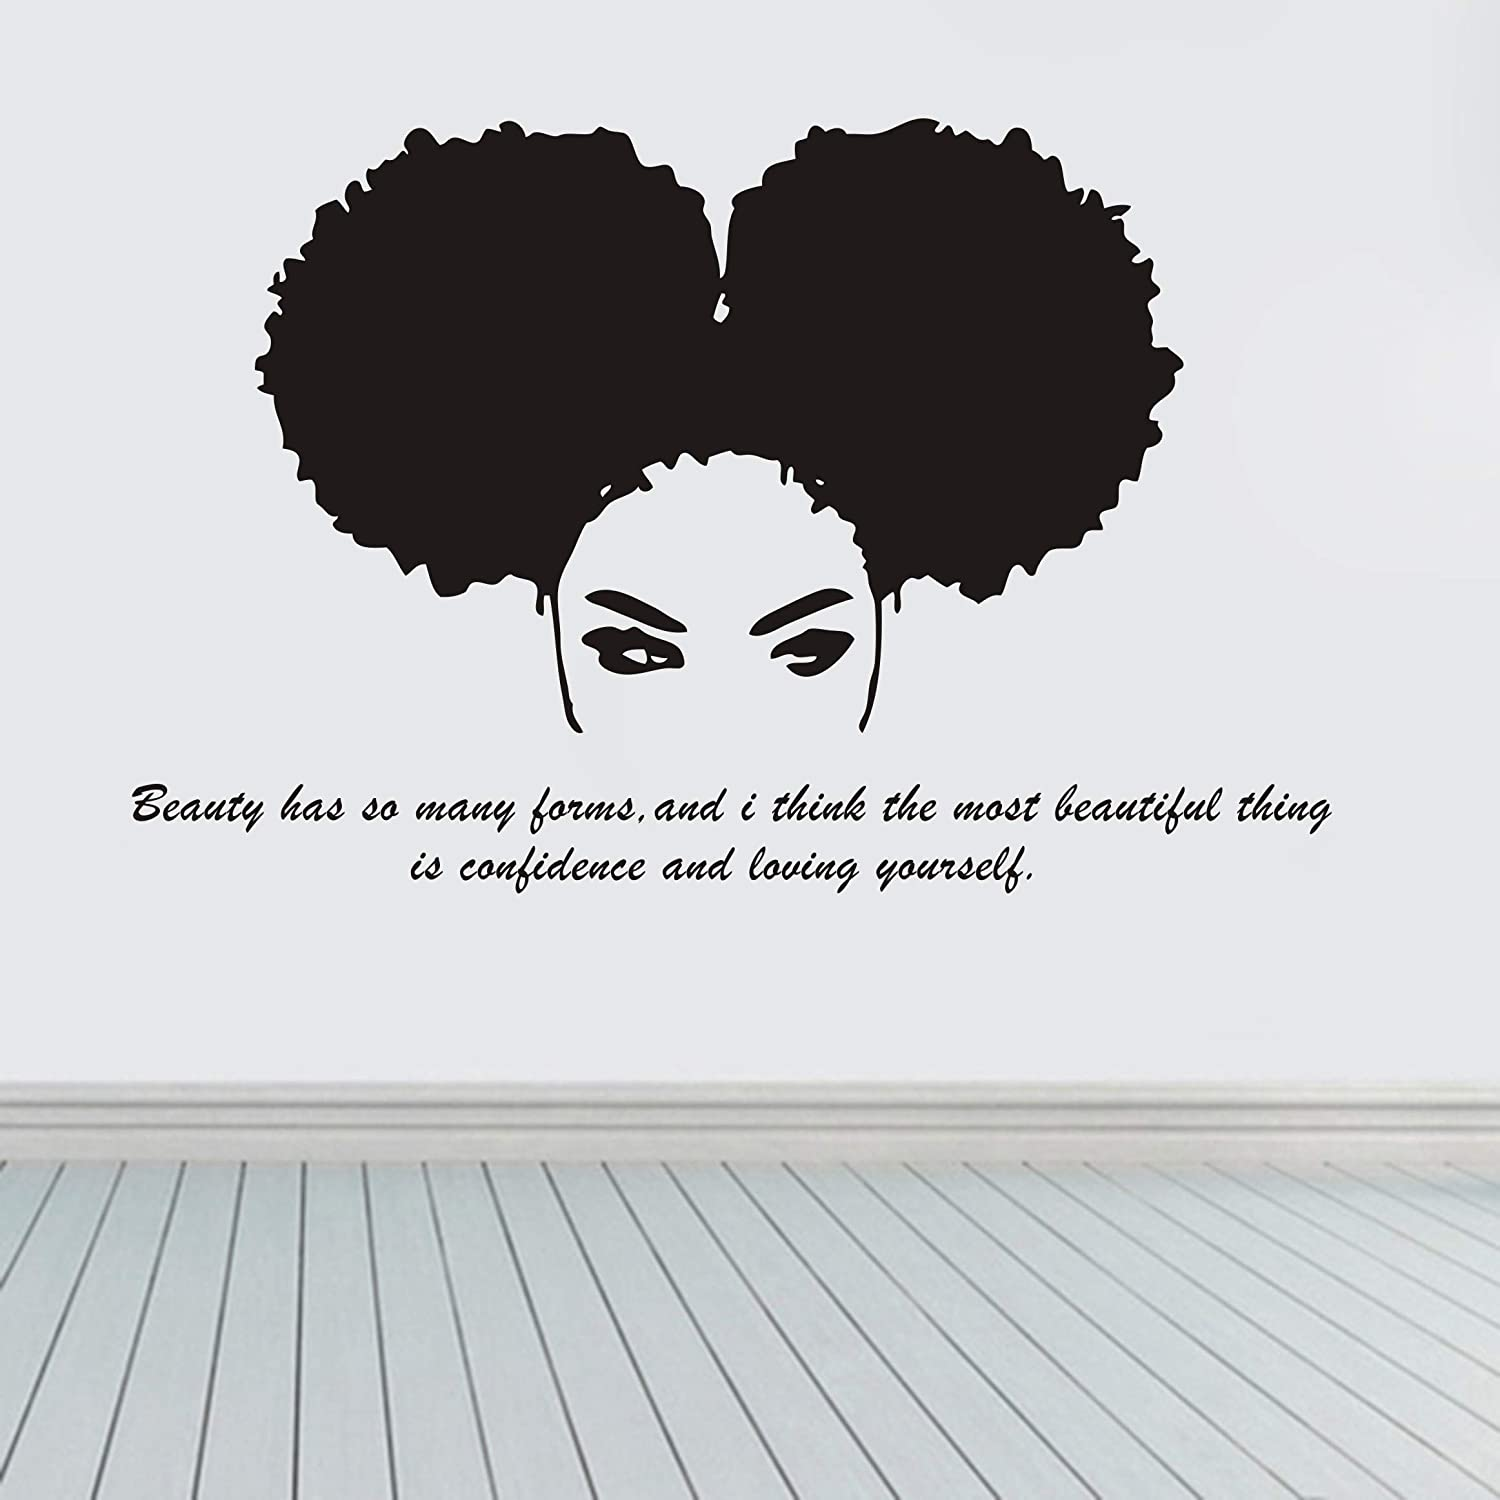 JUEKUI Beautiful Tribal African Woman Wall Sticker Beauty Salon Africa Girl Decal Quote Home Decor Bedroom Living Room Stickers WS72 (Black)